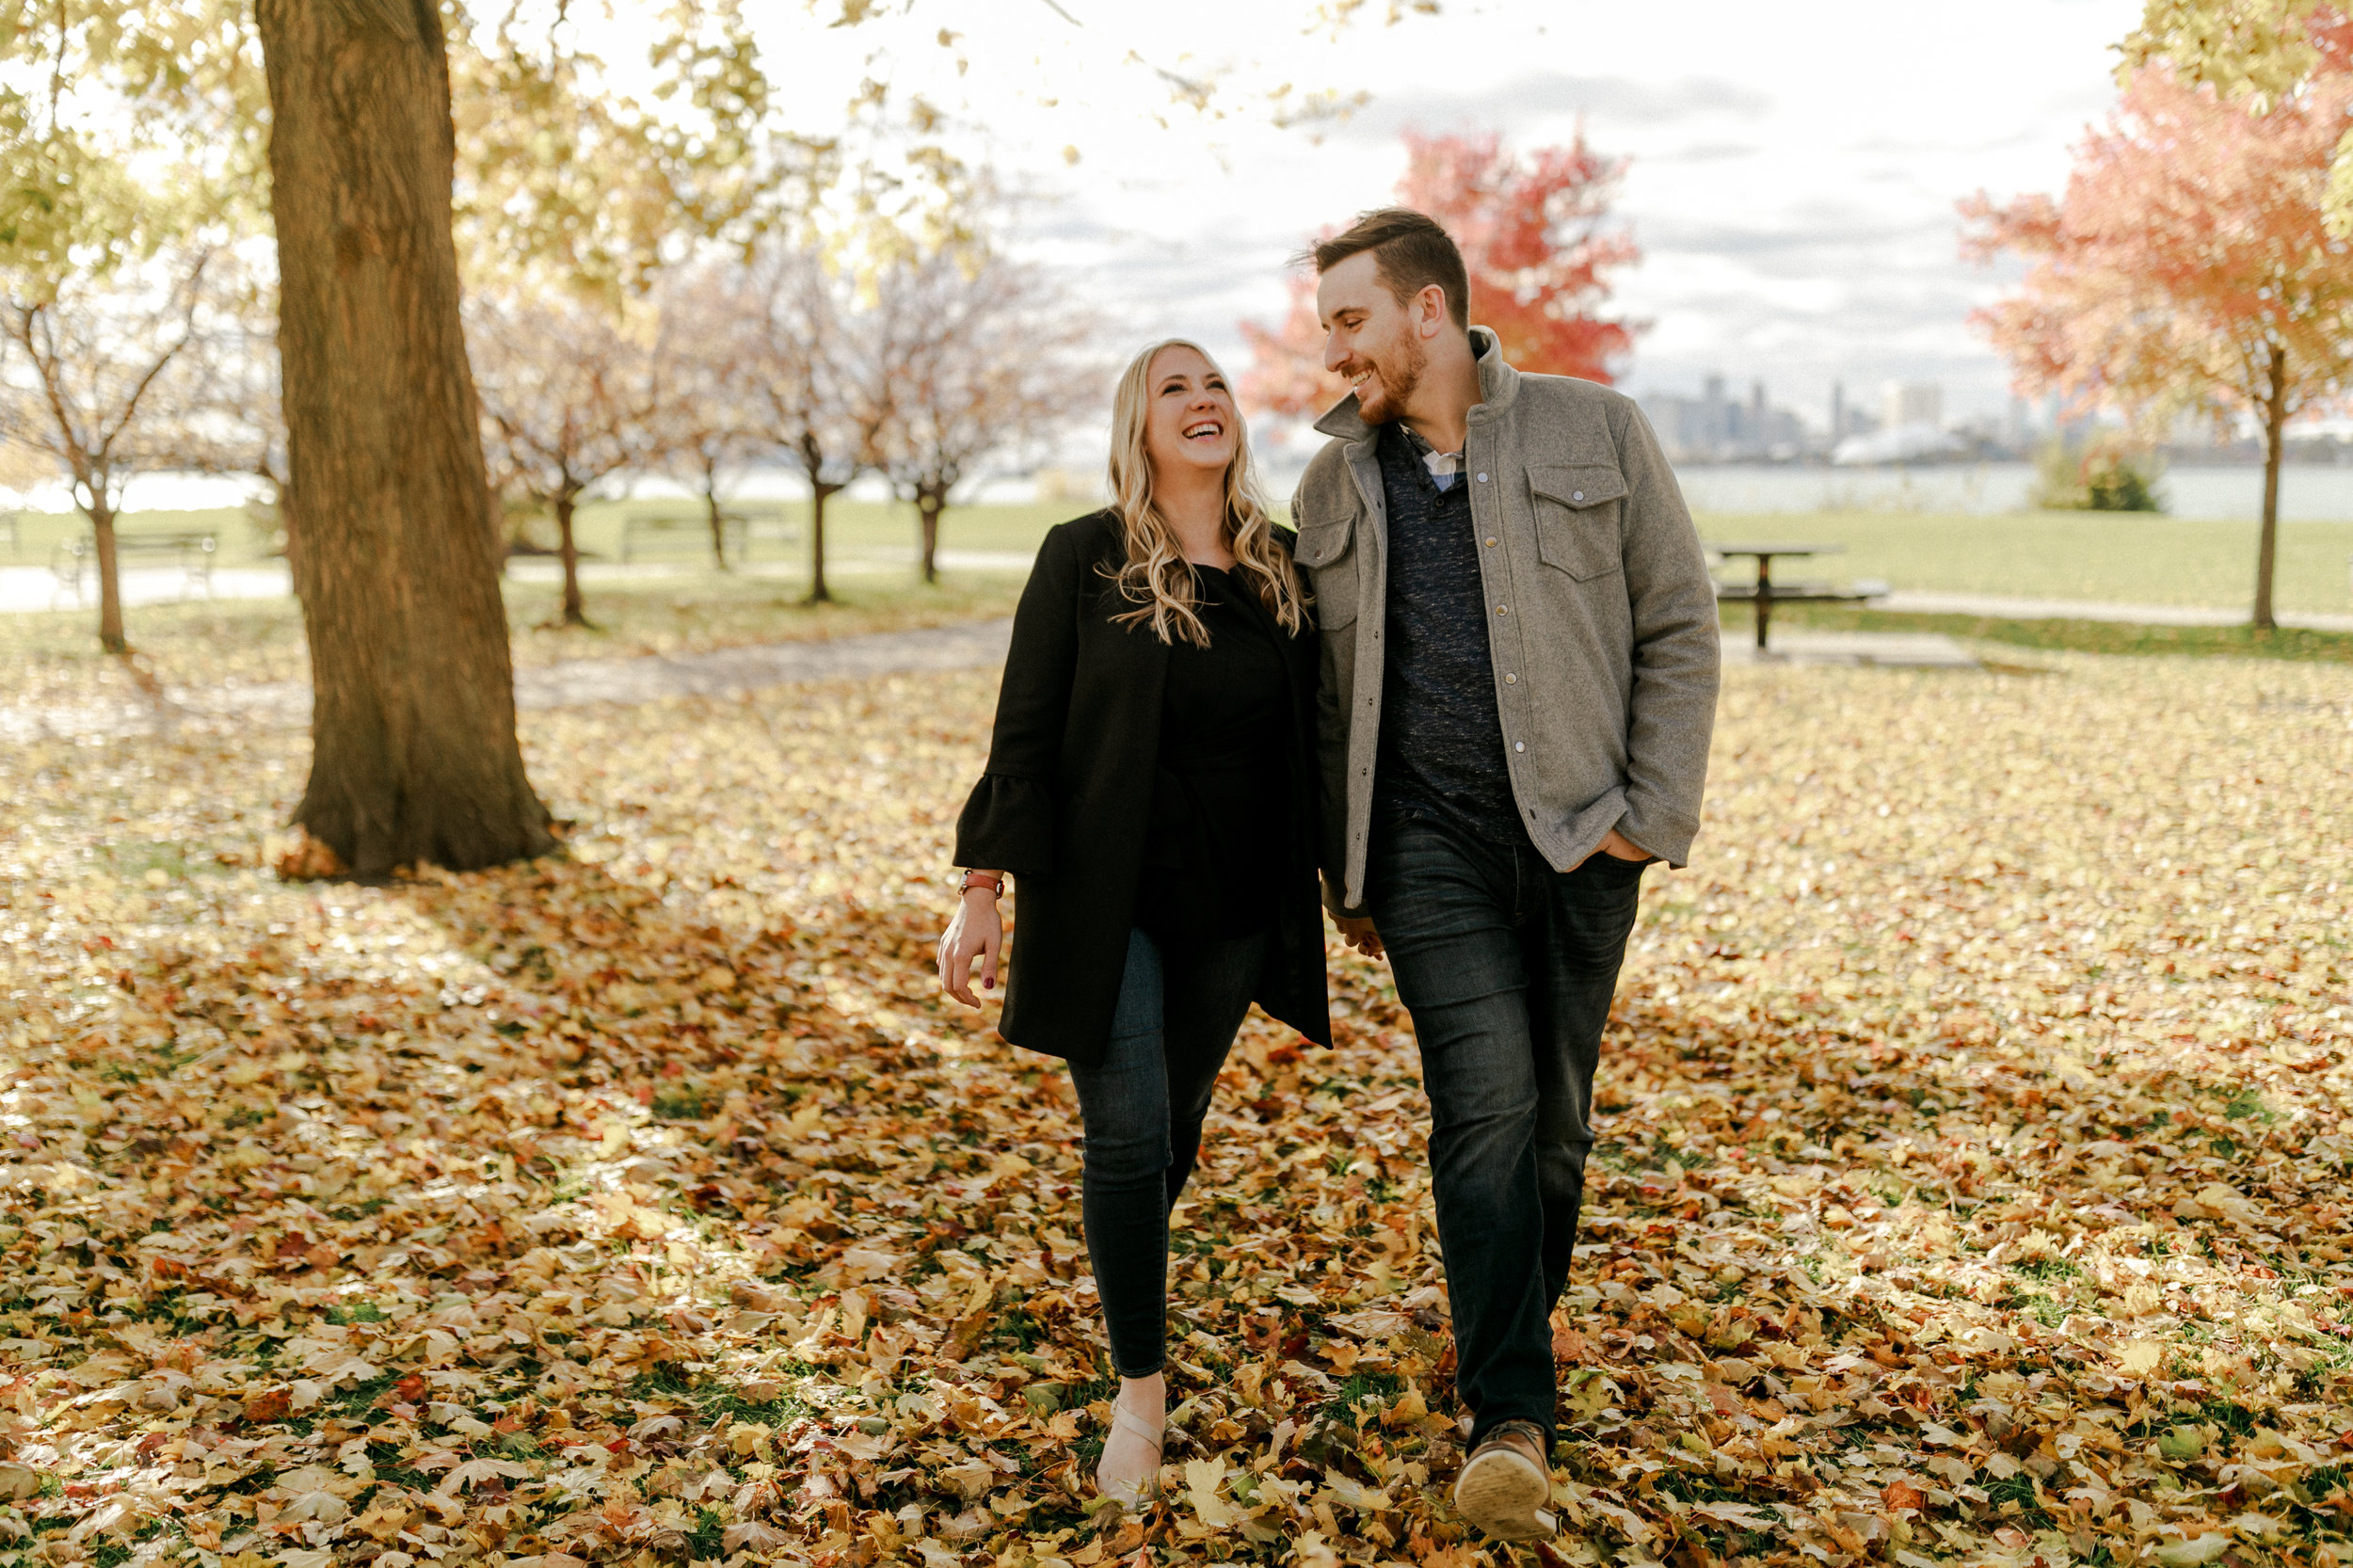 andrew + bridget - Look at these fall colors!!! This was one of my favorite engagement sessions from last year. These two rocked a super windy and very muddy day (thanks for ruining your shoes for the sake of love, guys!) I can not wait for their wedding in August!